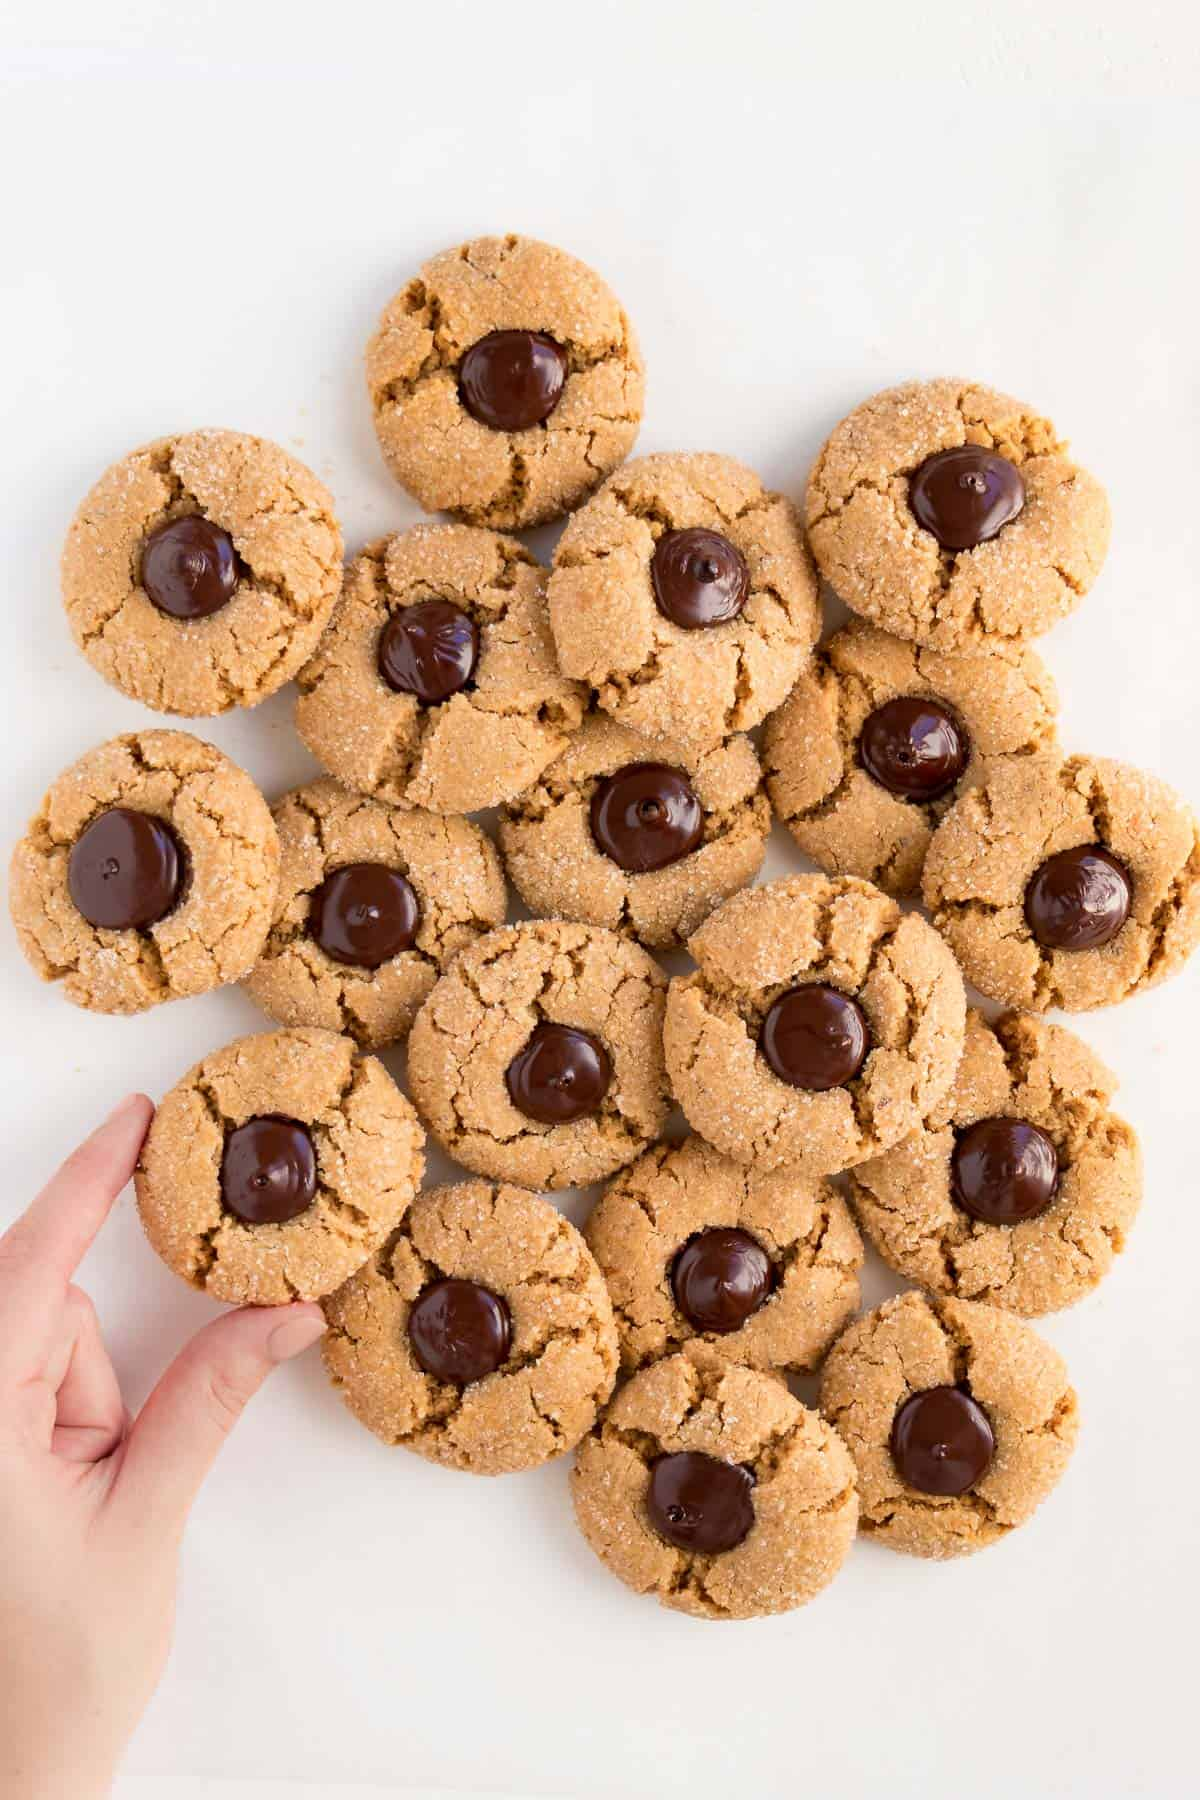 a hand grabbing a pile of vegan peanut butter blossoms on a white surface